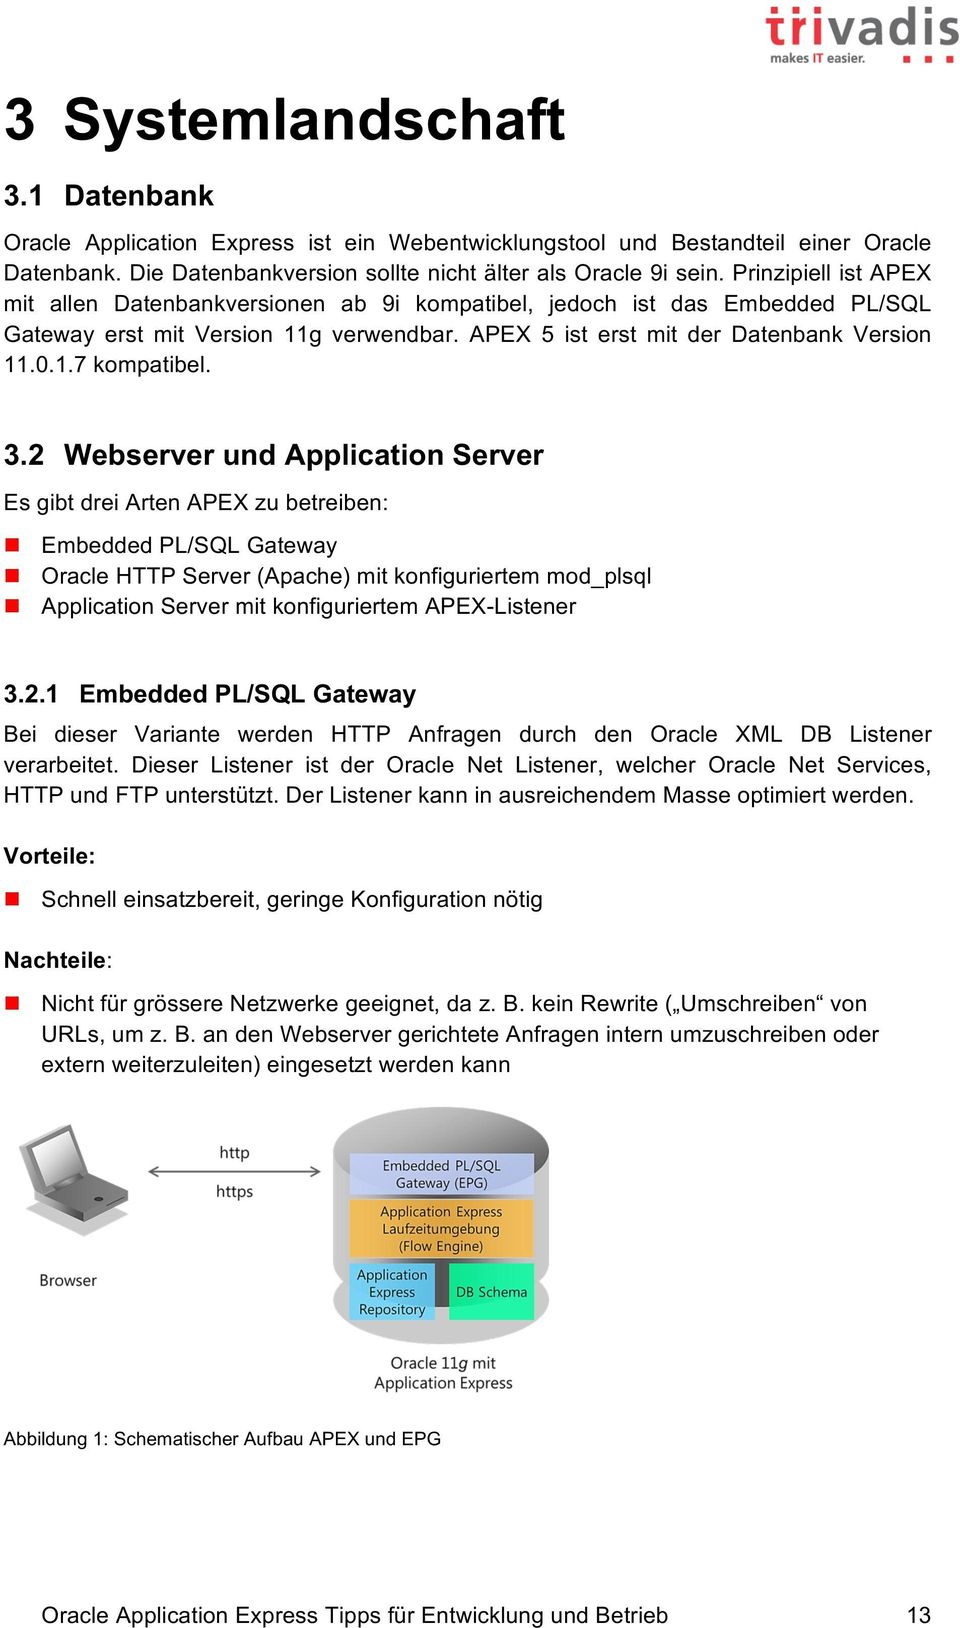 3.2 Webserver und Application Server Es gibt drei Arten APEX zu betreiben: n Embedded PL/SQL Gateway n Oracle HTTP Server (Apache) mit konfiguriertem mod_plsql n Application Server mit konfiguriertem